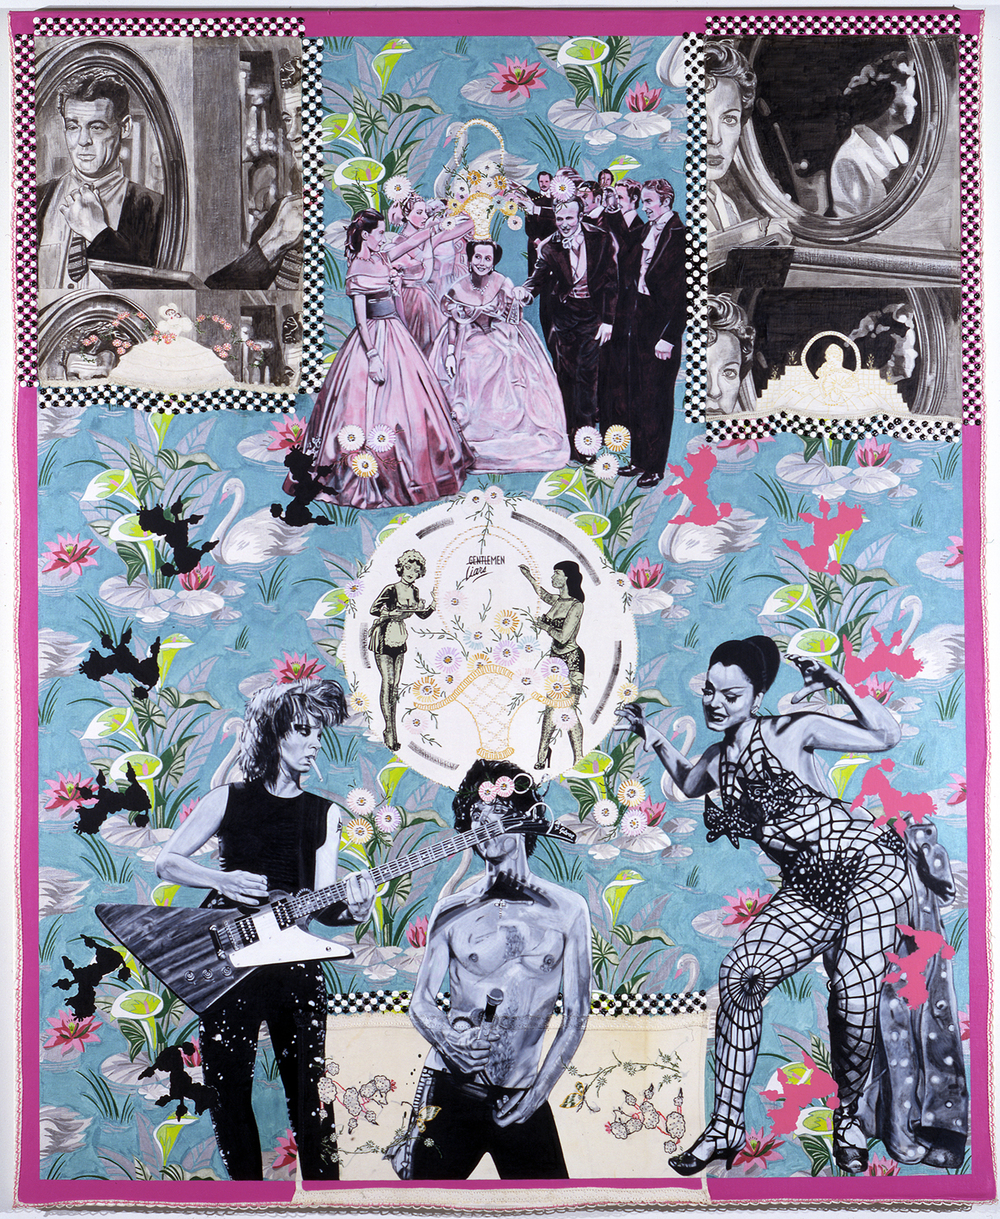 "Carole Caroompas, ""Heathcliff and the Femme Fatale Go On Tour: Ladies, Gentlemen, Master, Servant"", 2000, acrylic on found embroidery over canvas, 84 x 72 inches"